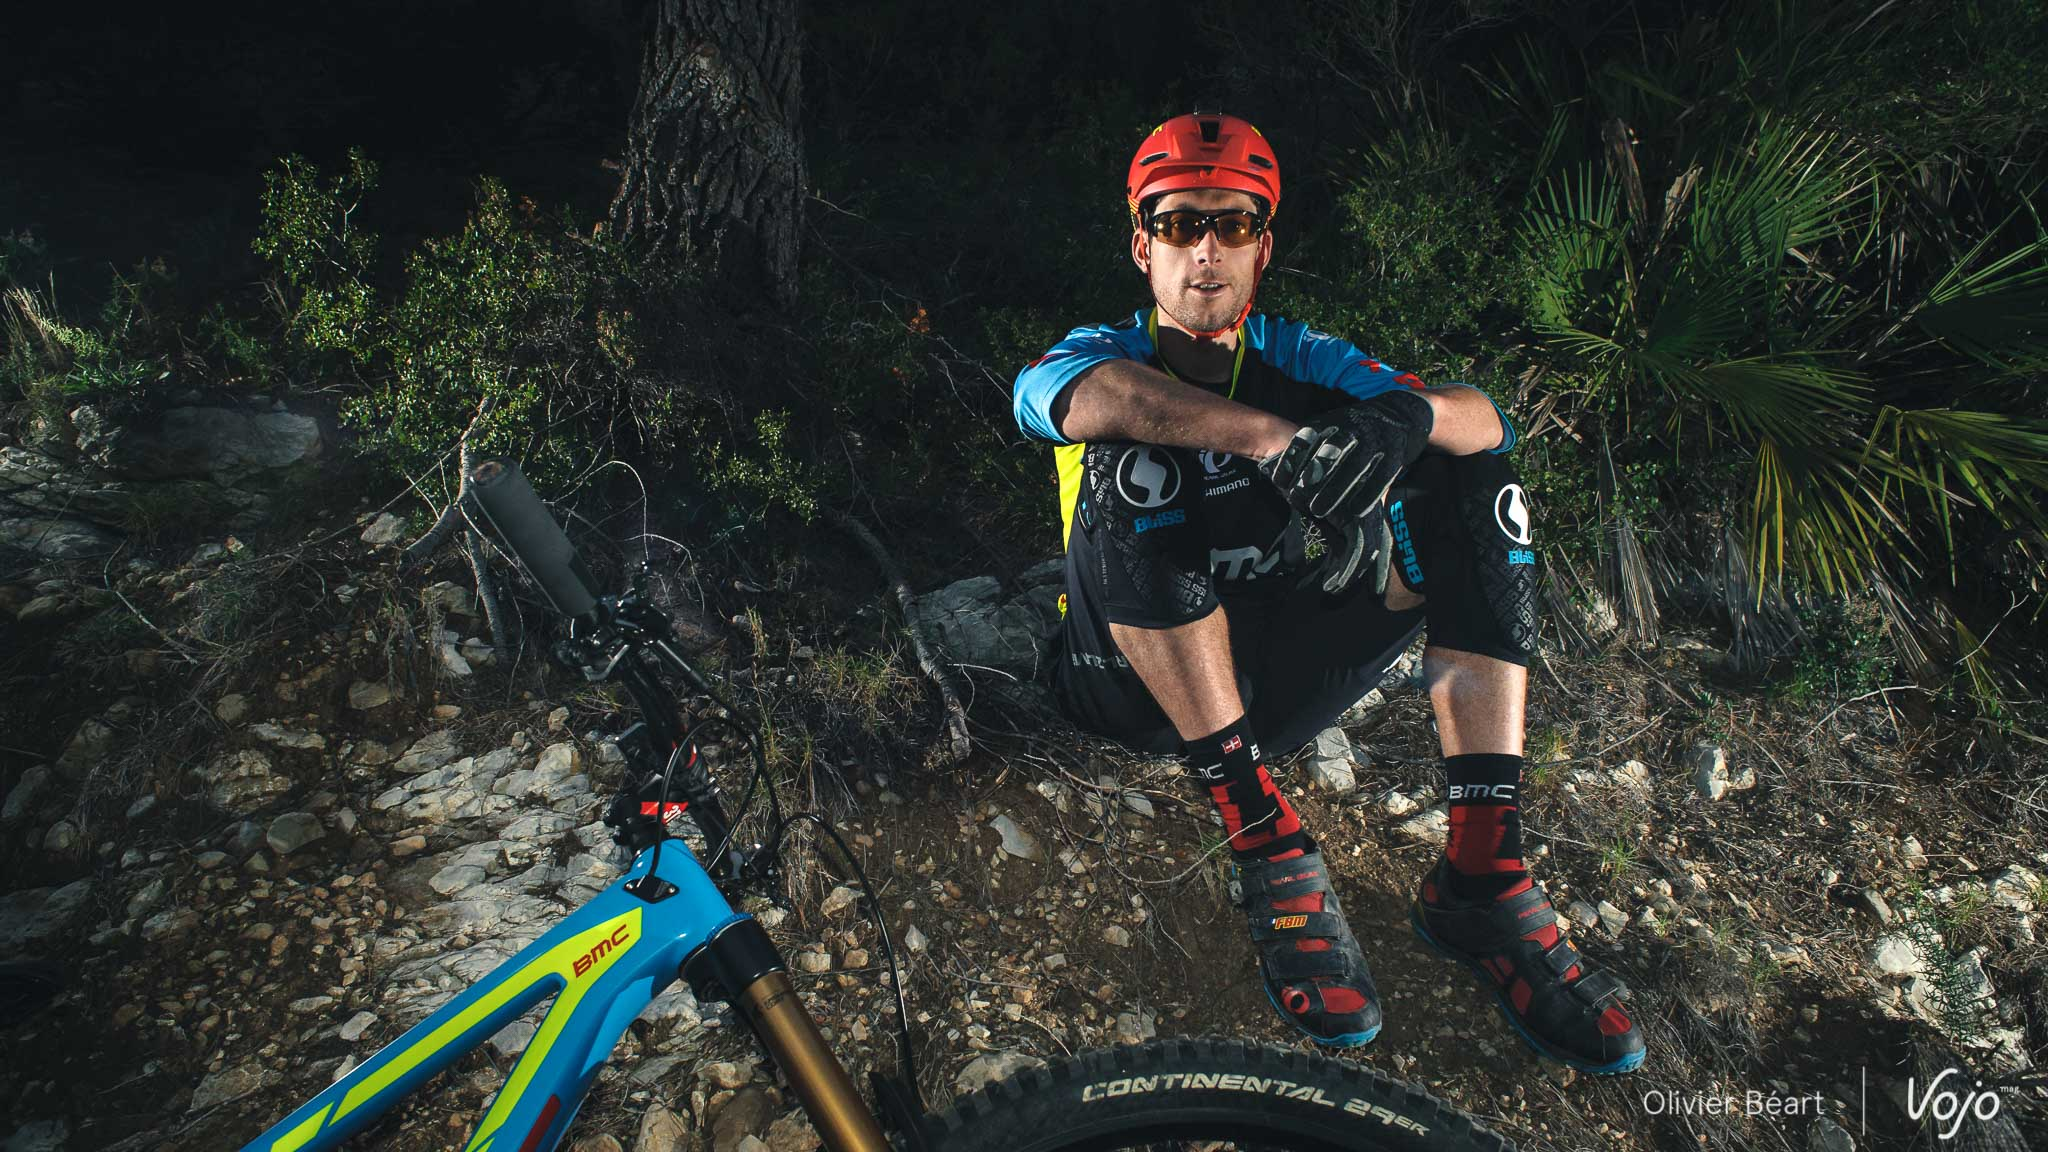 Francois_Bailly_Maitre_Interview_BMC_TrailCrew_Copyright_OBeart_VojoMag-6